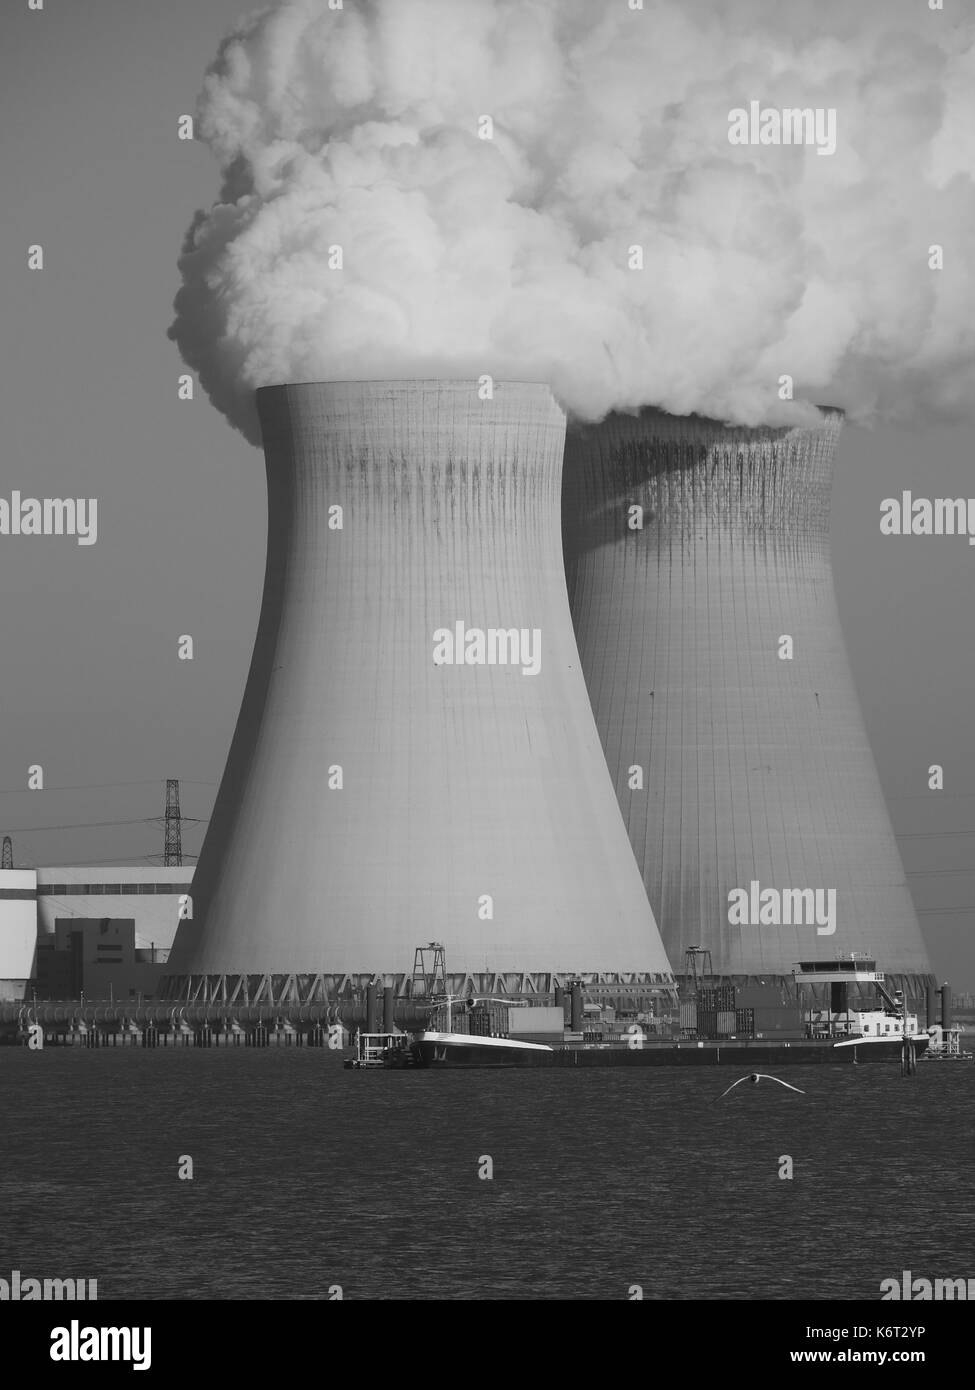 A monochrome photograph of two cooling towers of a nuclear power plant with a passing boat in the foreground. - Stock Image